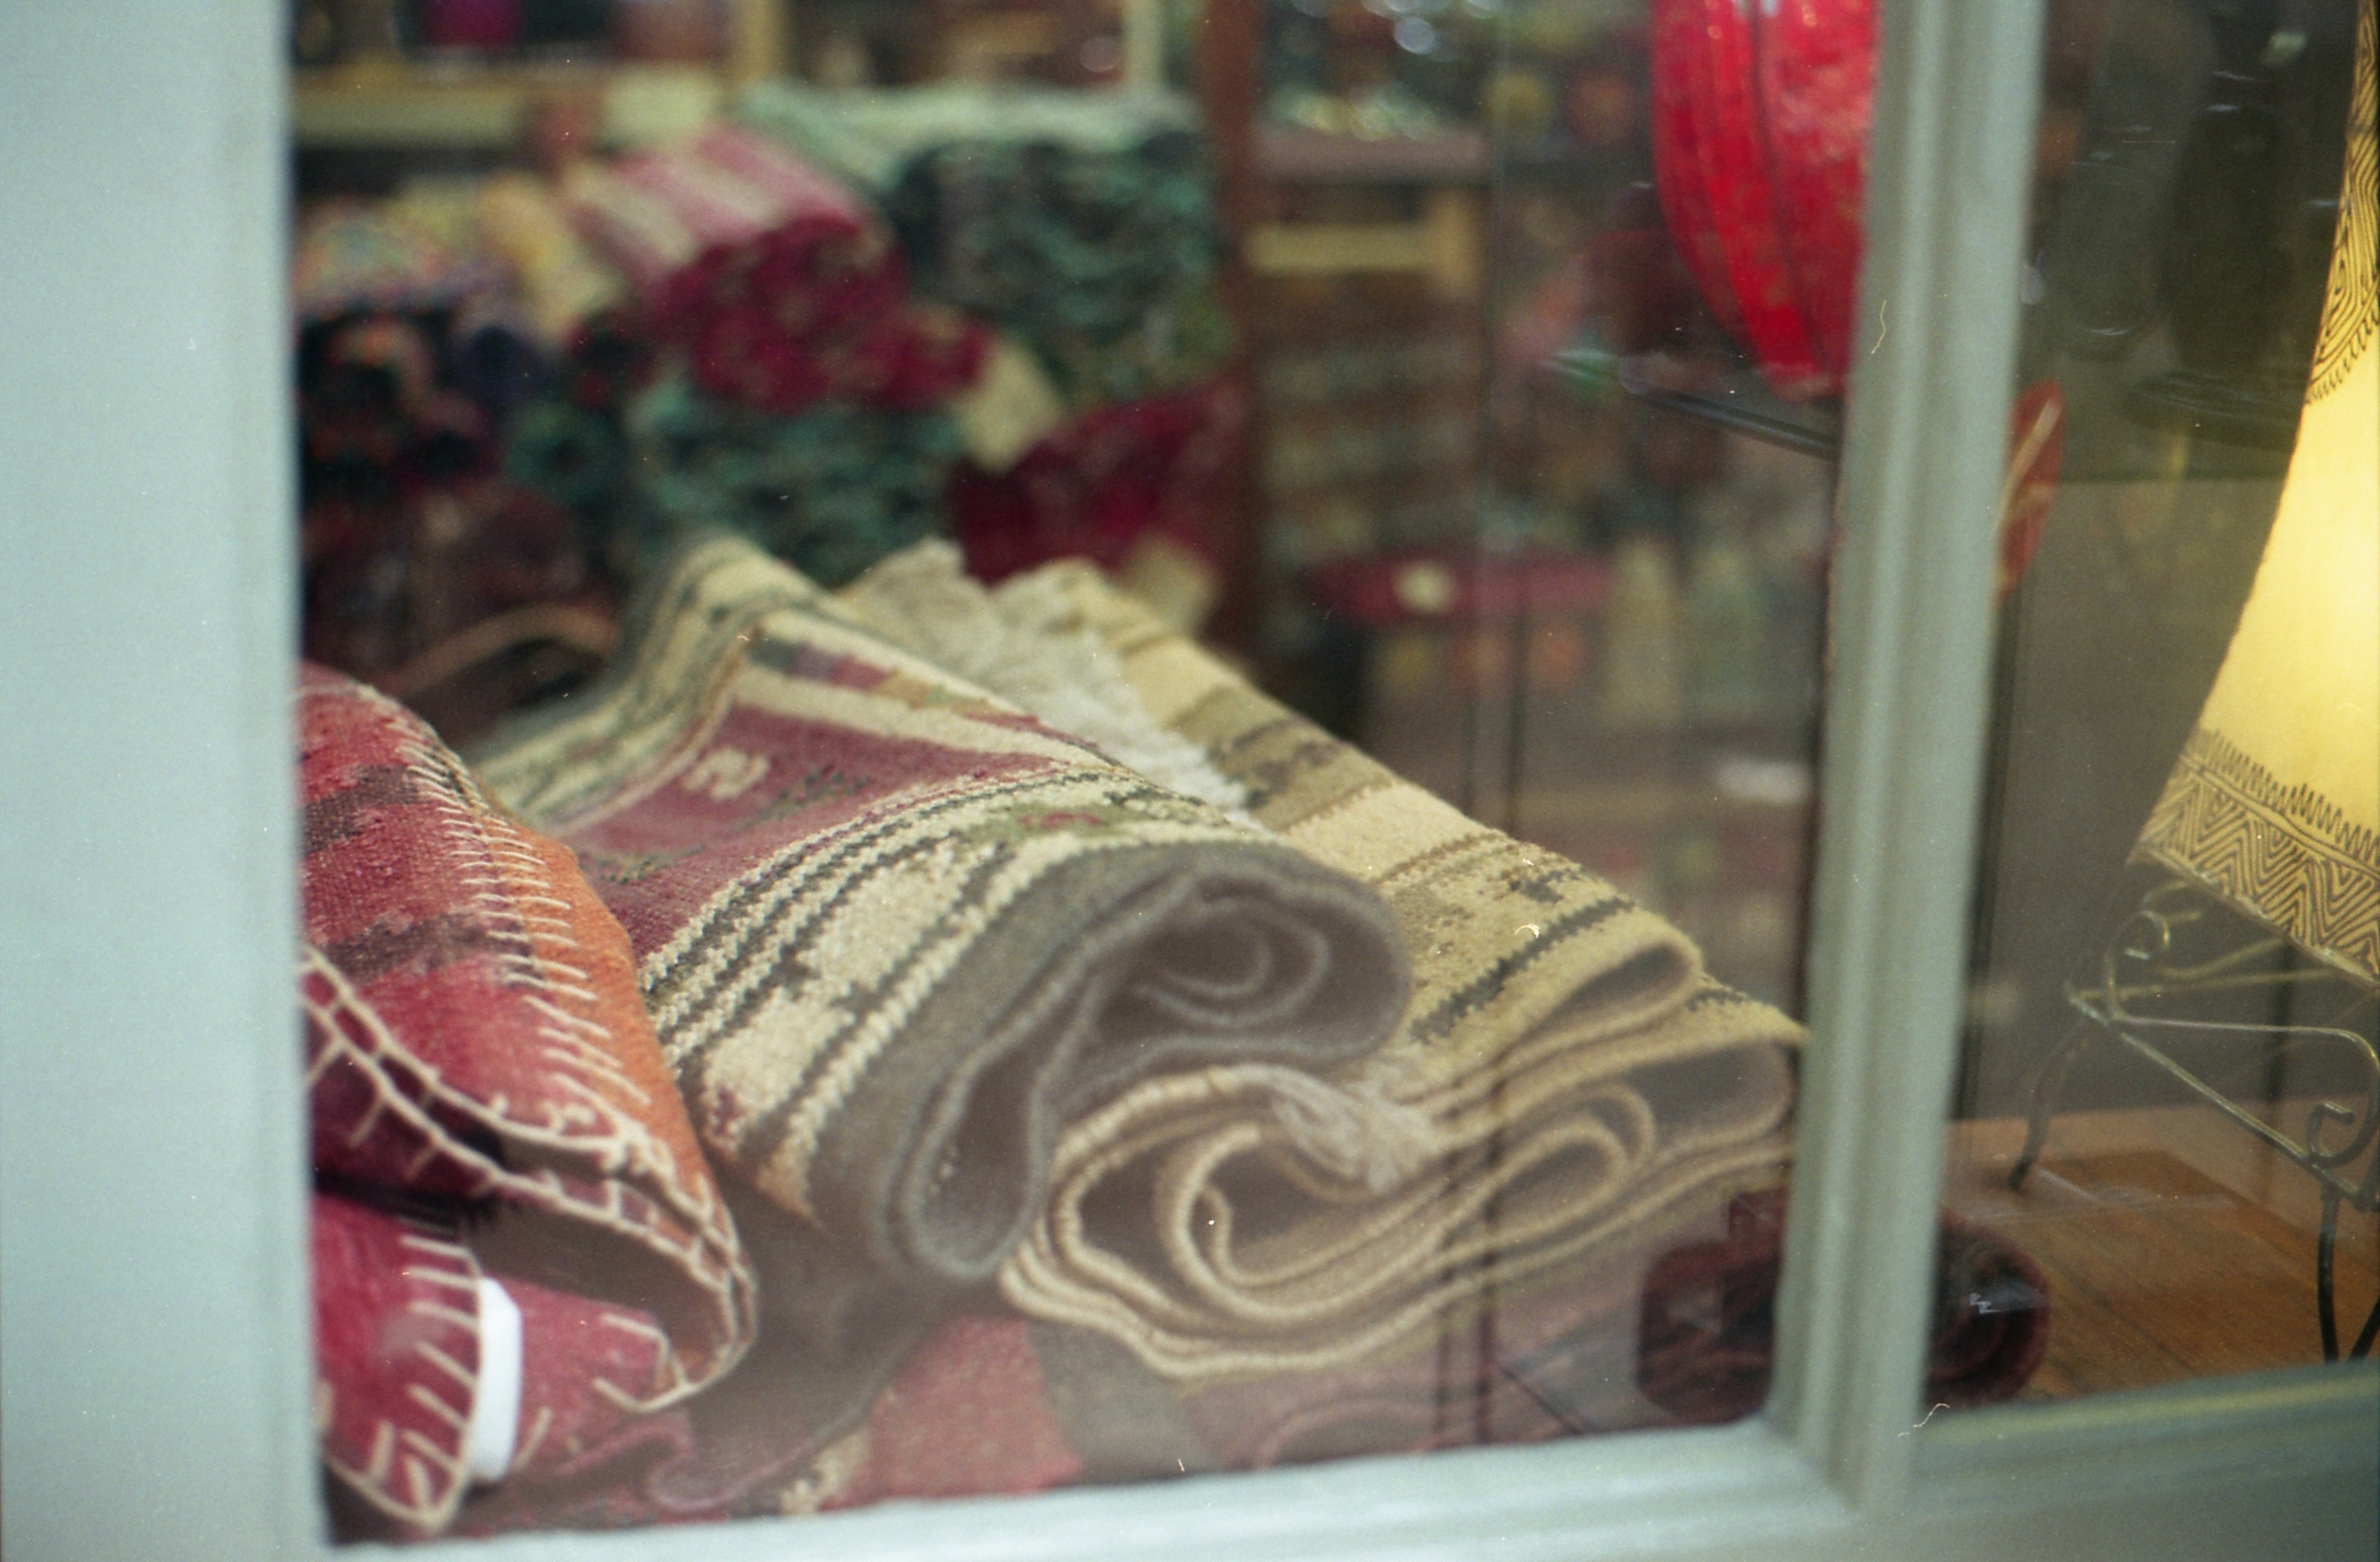 62/366 - If all else fails I go to the Corn Exchange for photos (you may have noticed lol) heres some pretty rugs in a shop window.